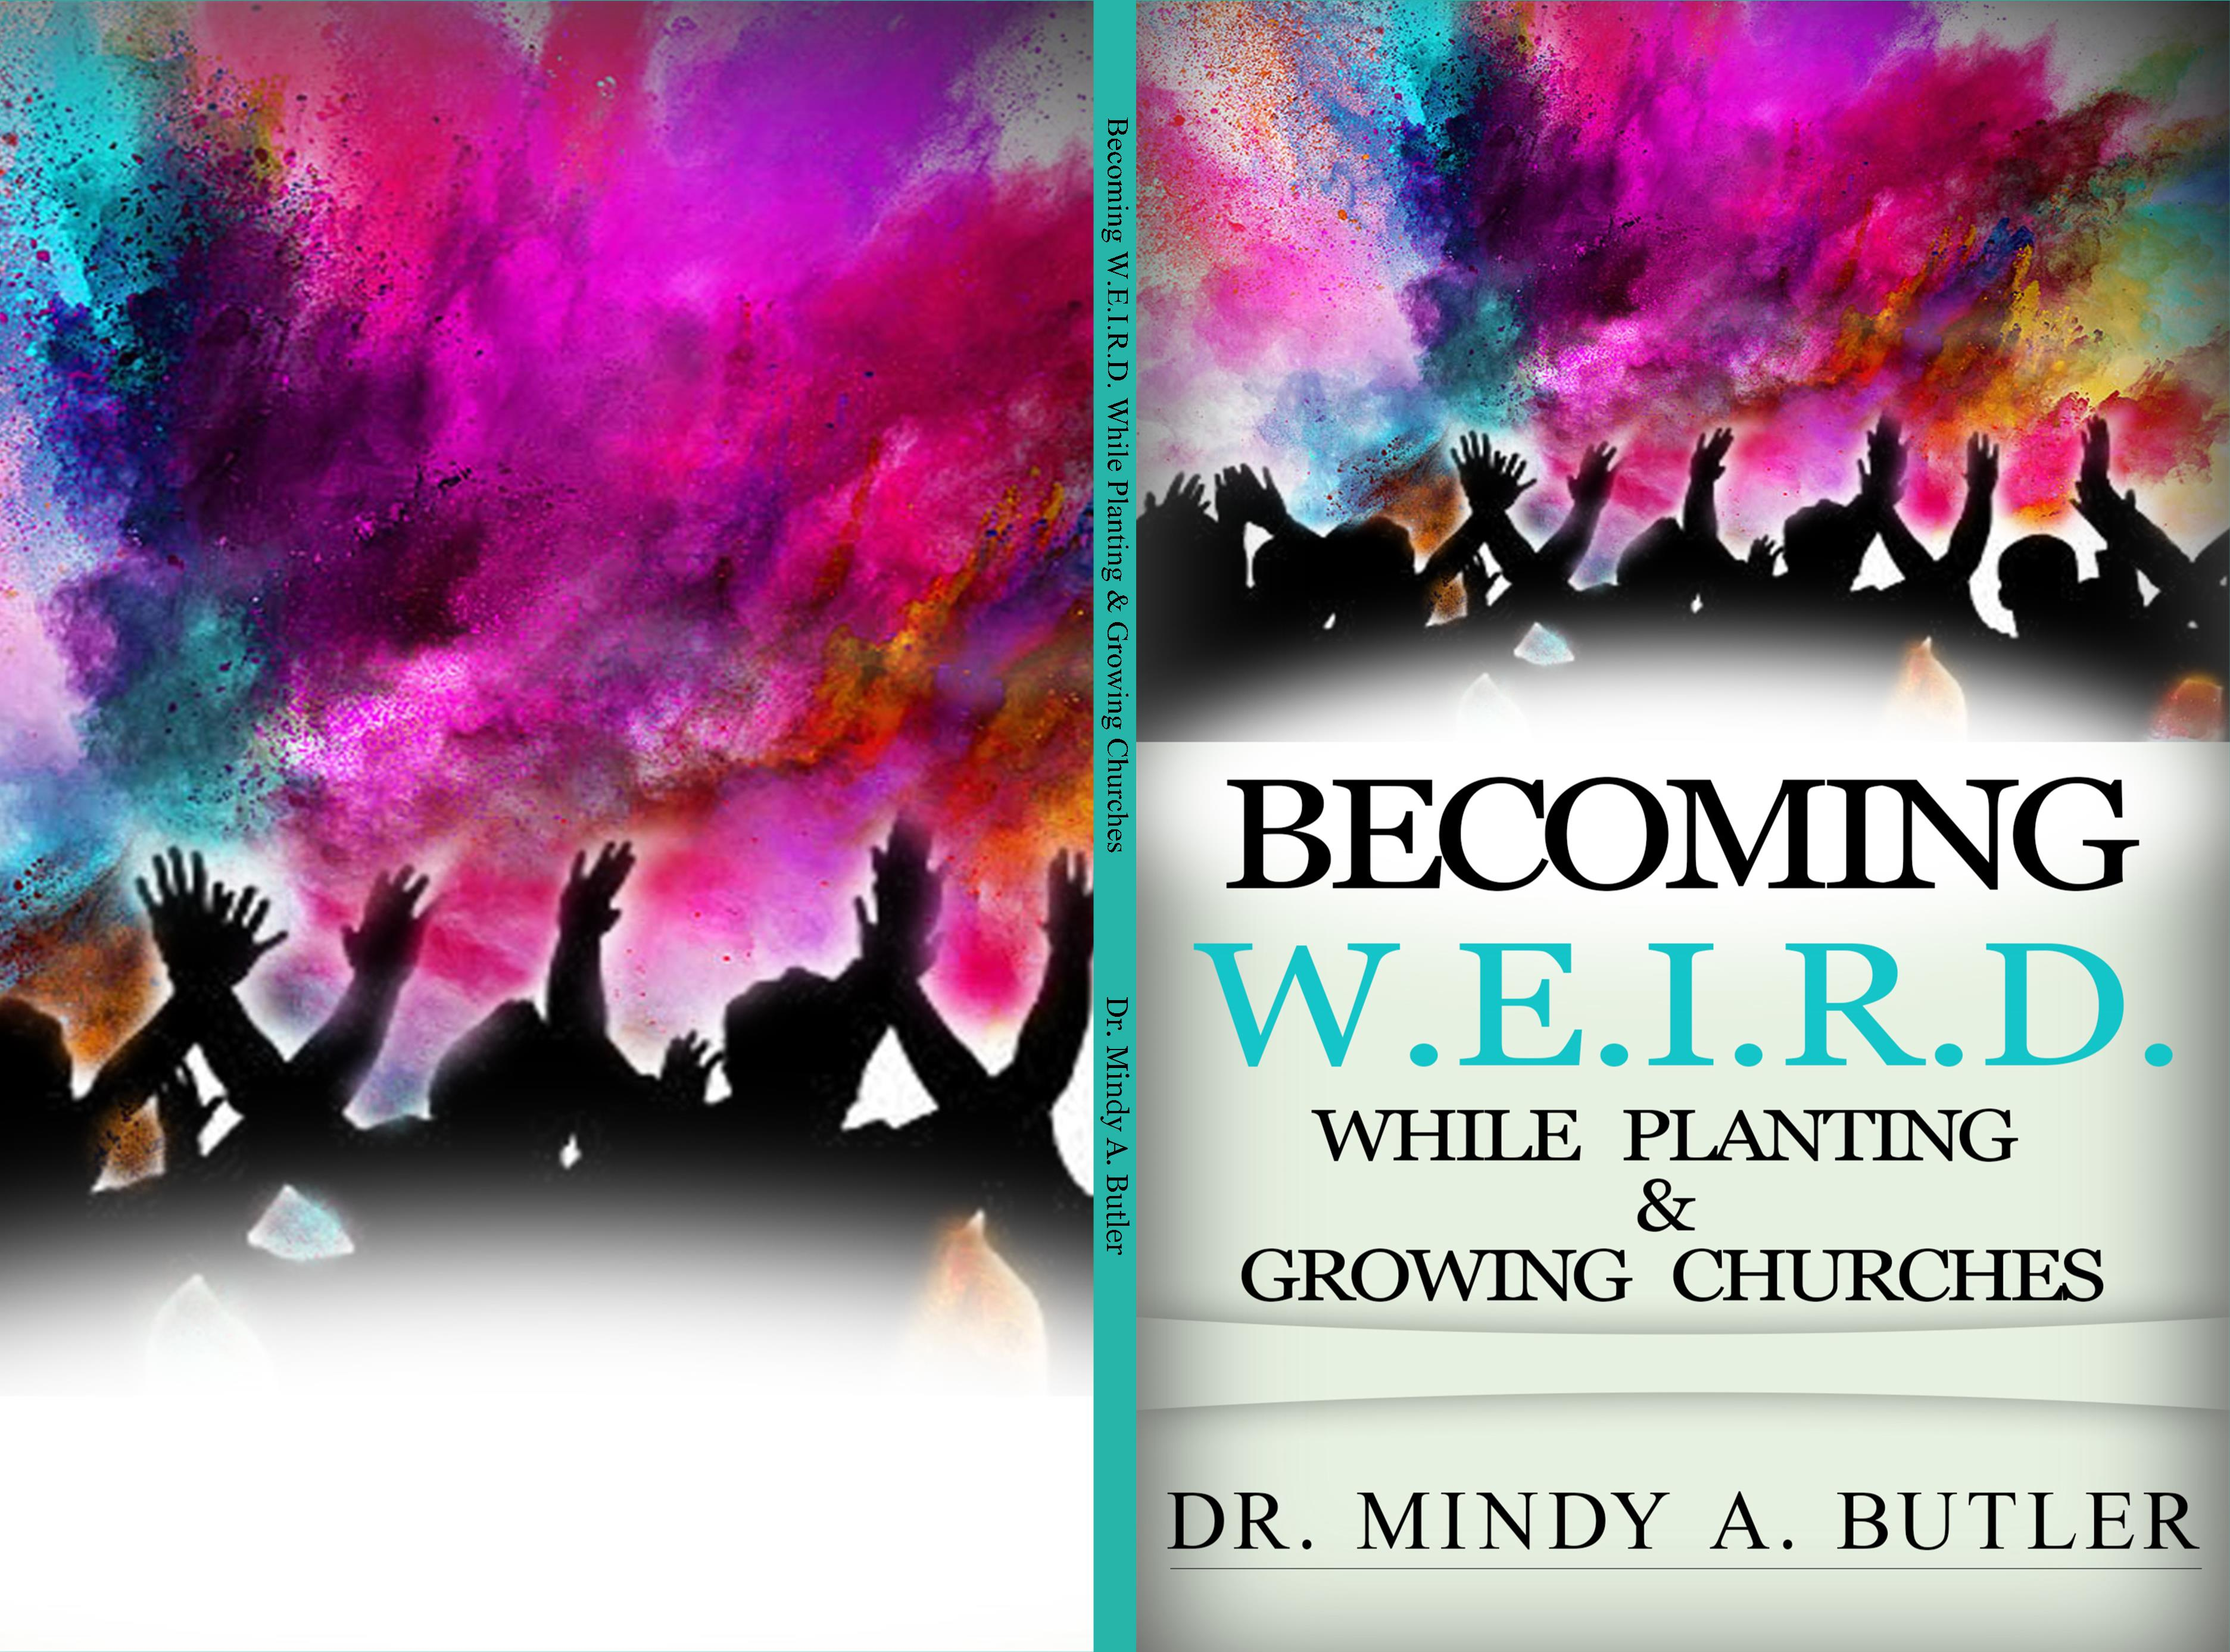 Becoming W.E.I.R.D. While Planting & Growing Churches cover image